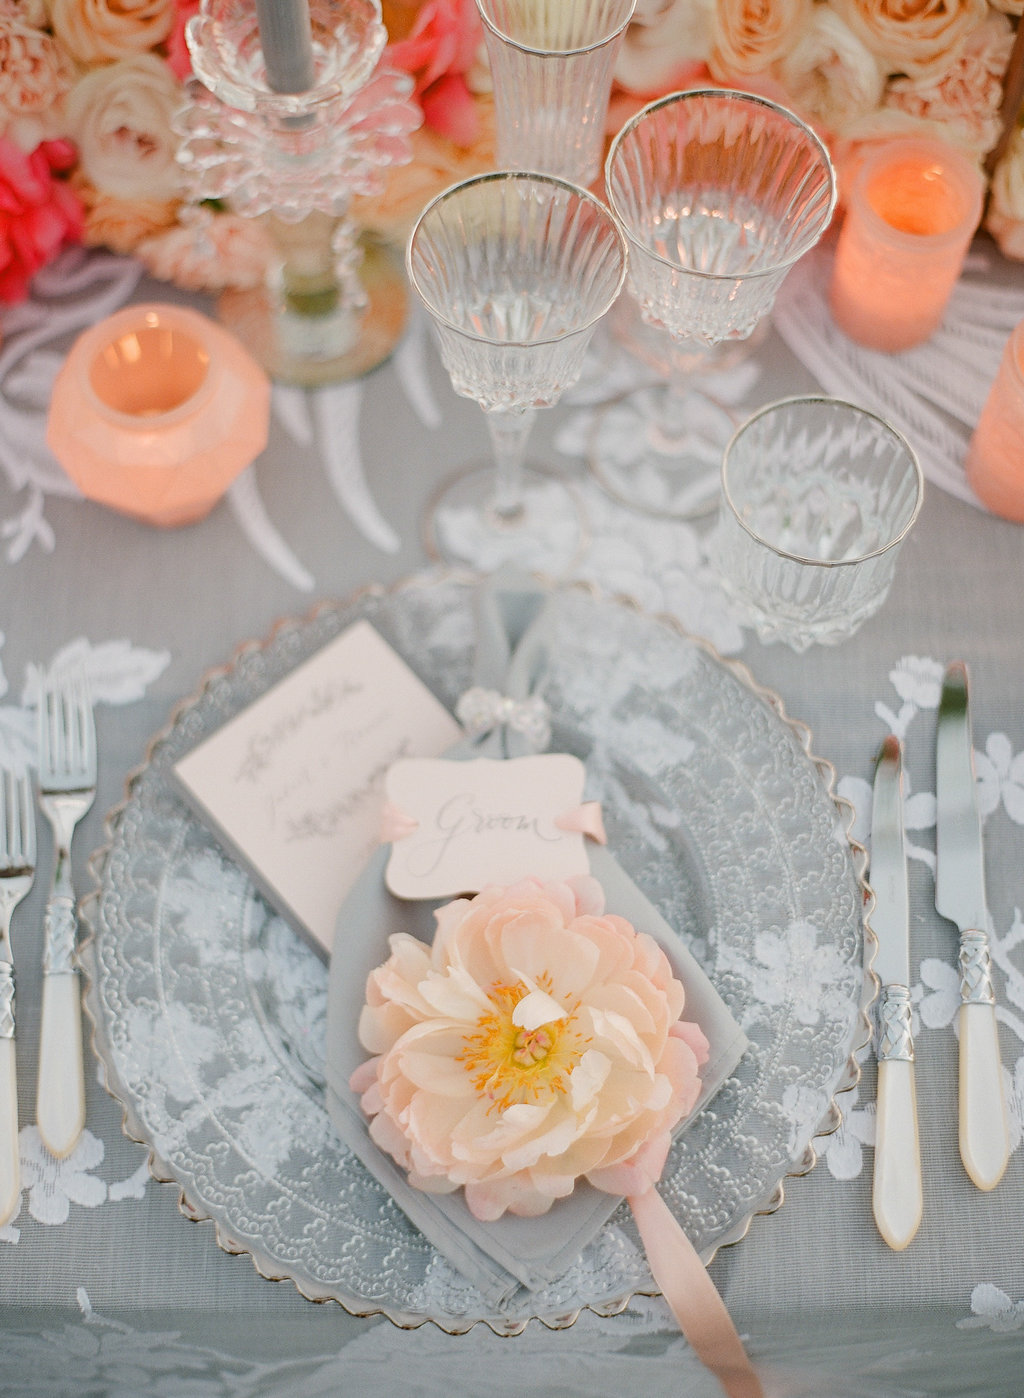 peony on charger for table decor